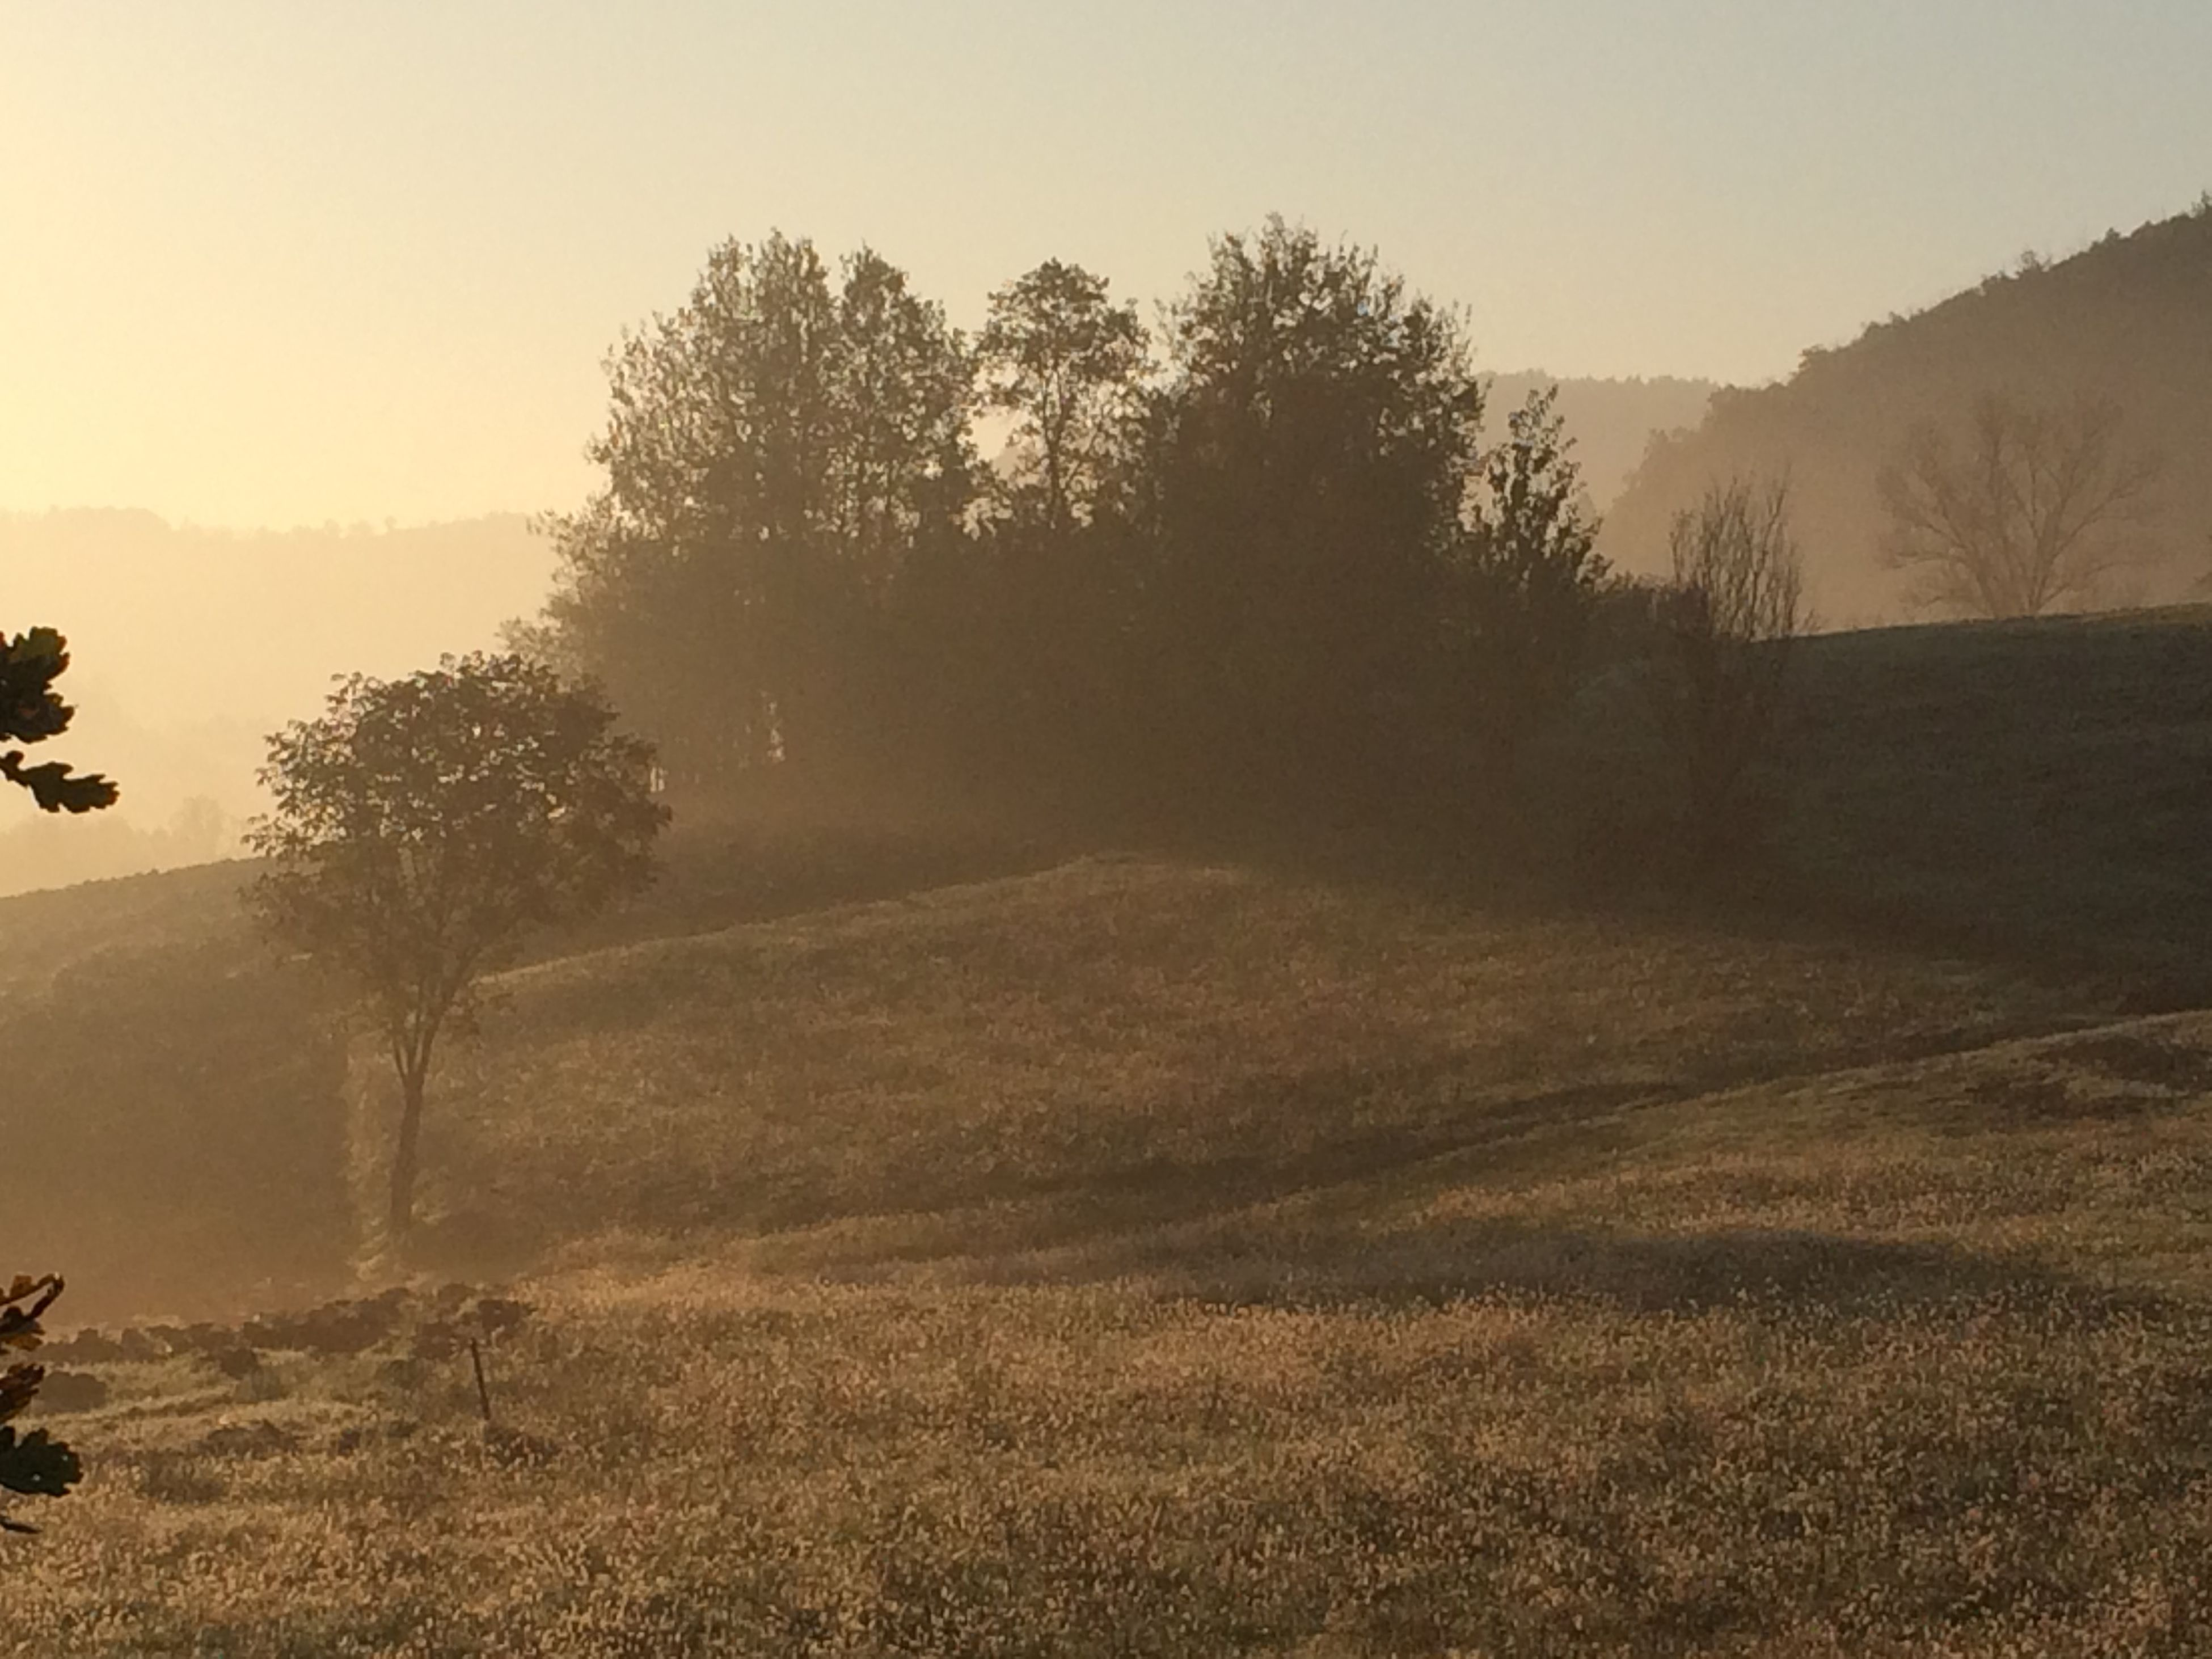 tranquil scene, tranquility, landscape, tree, fog, scenics, beauty in nature, nature, field, non-urban scene, foggy, sky, mountain, growth, remote, idyllic, outdoors, copy space, bare tree